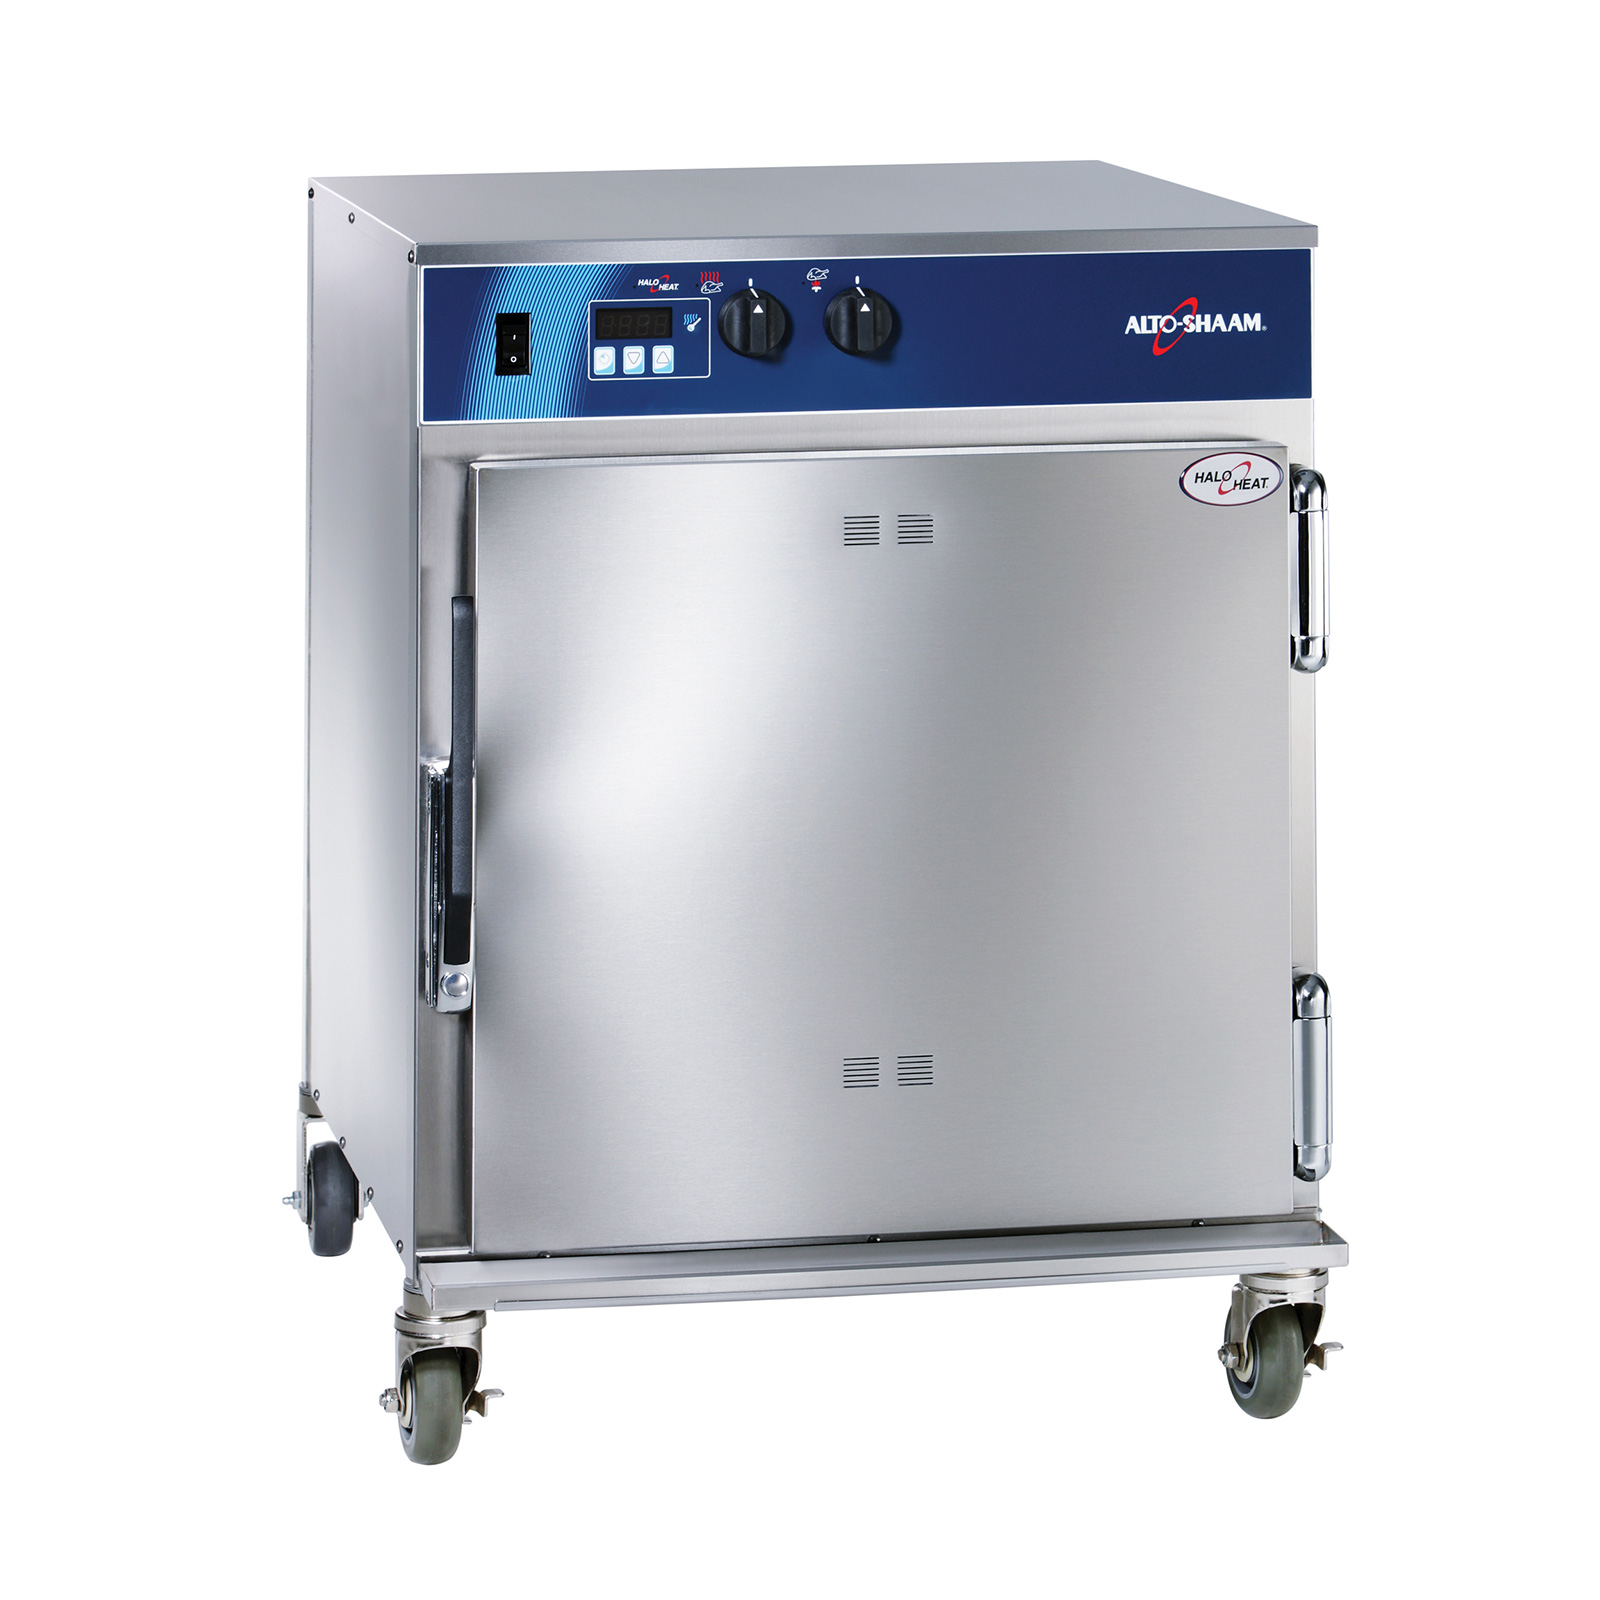 Alto-Shaam 750-TH/II-QS cabinet, cook / hold / oven